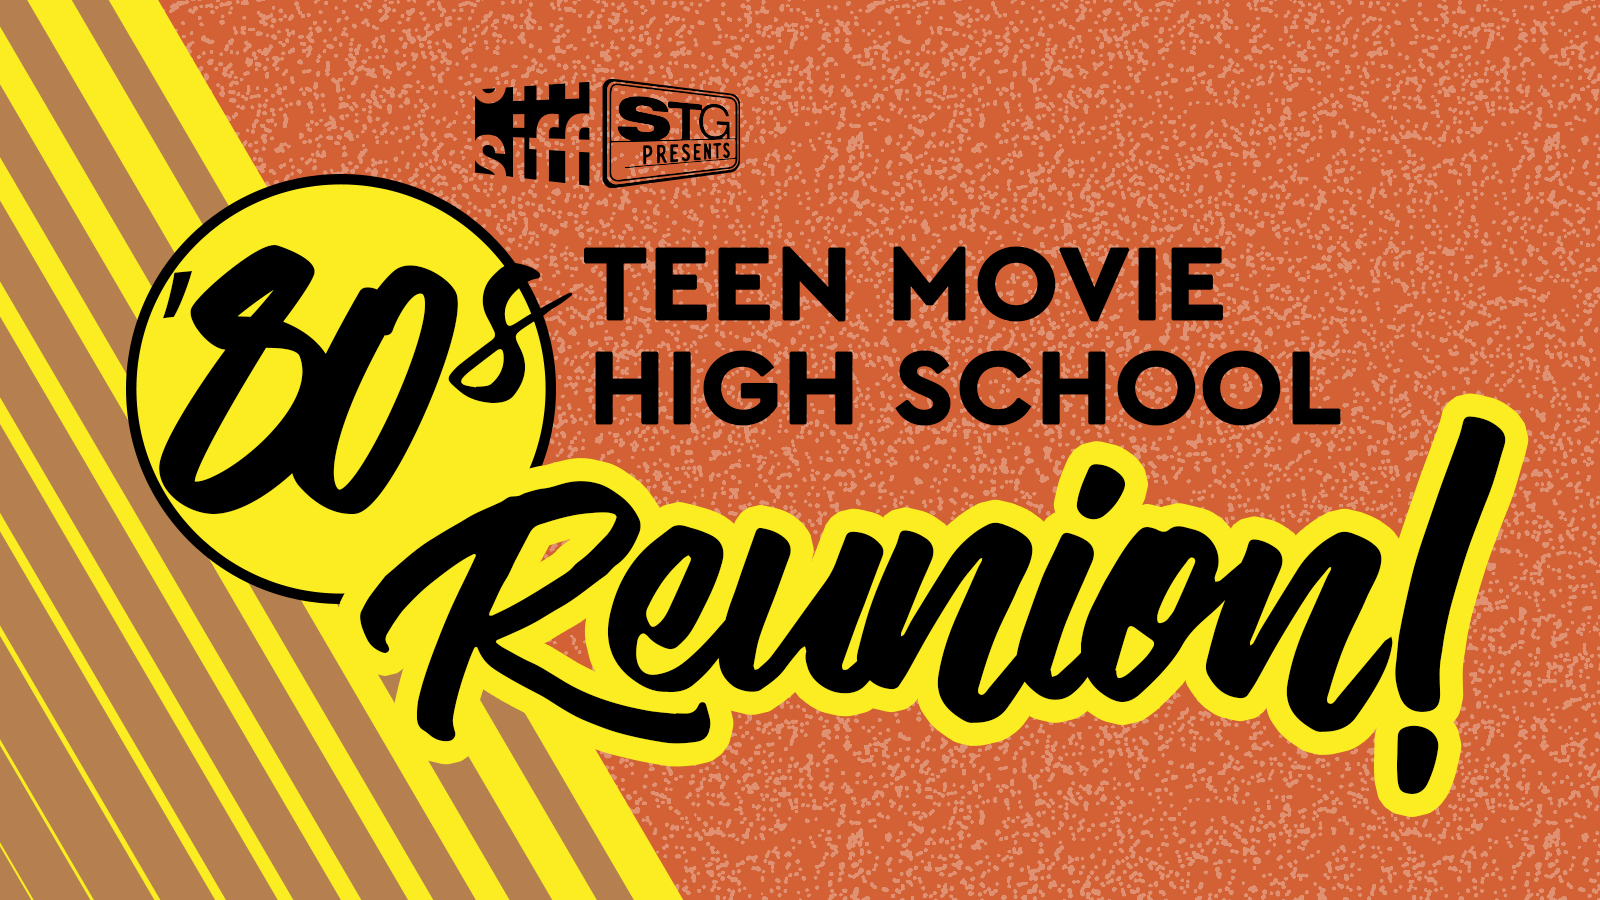 The '80s Teen Movie High School Reunion